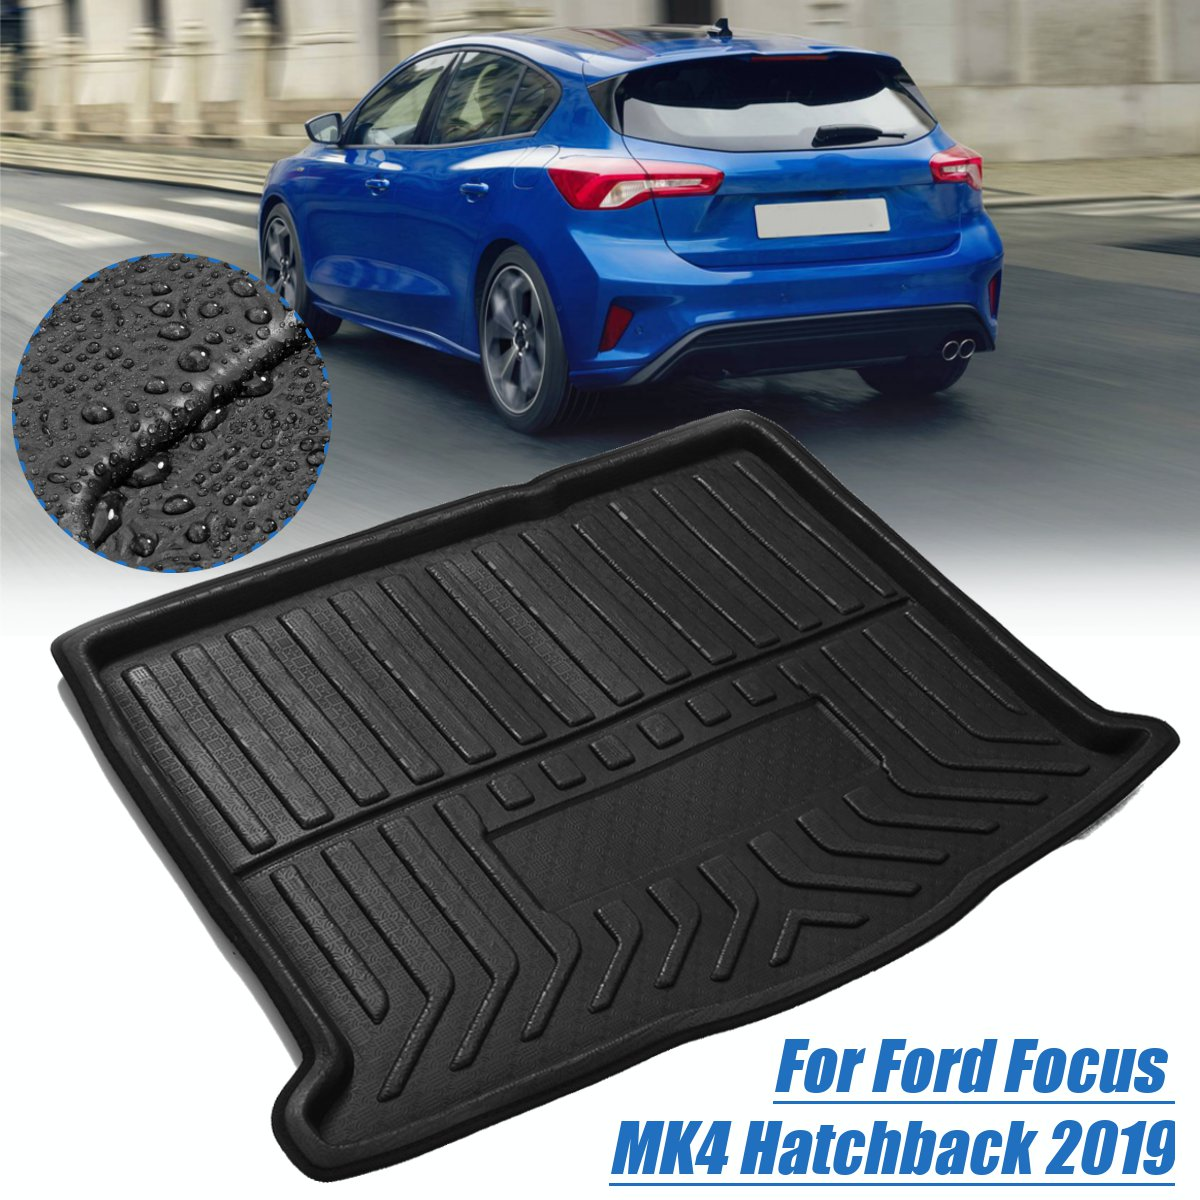 Accessories Cargo Boot Liner For Ford Focus MK4 Hatchback 2019  Rear Cargo Liner Trunk Mat Floor Tray Carpet Mud Kick Pad NEW